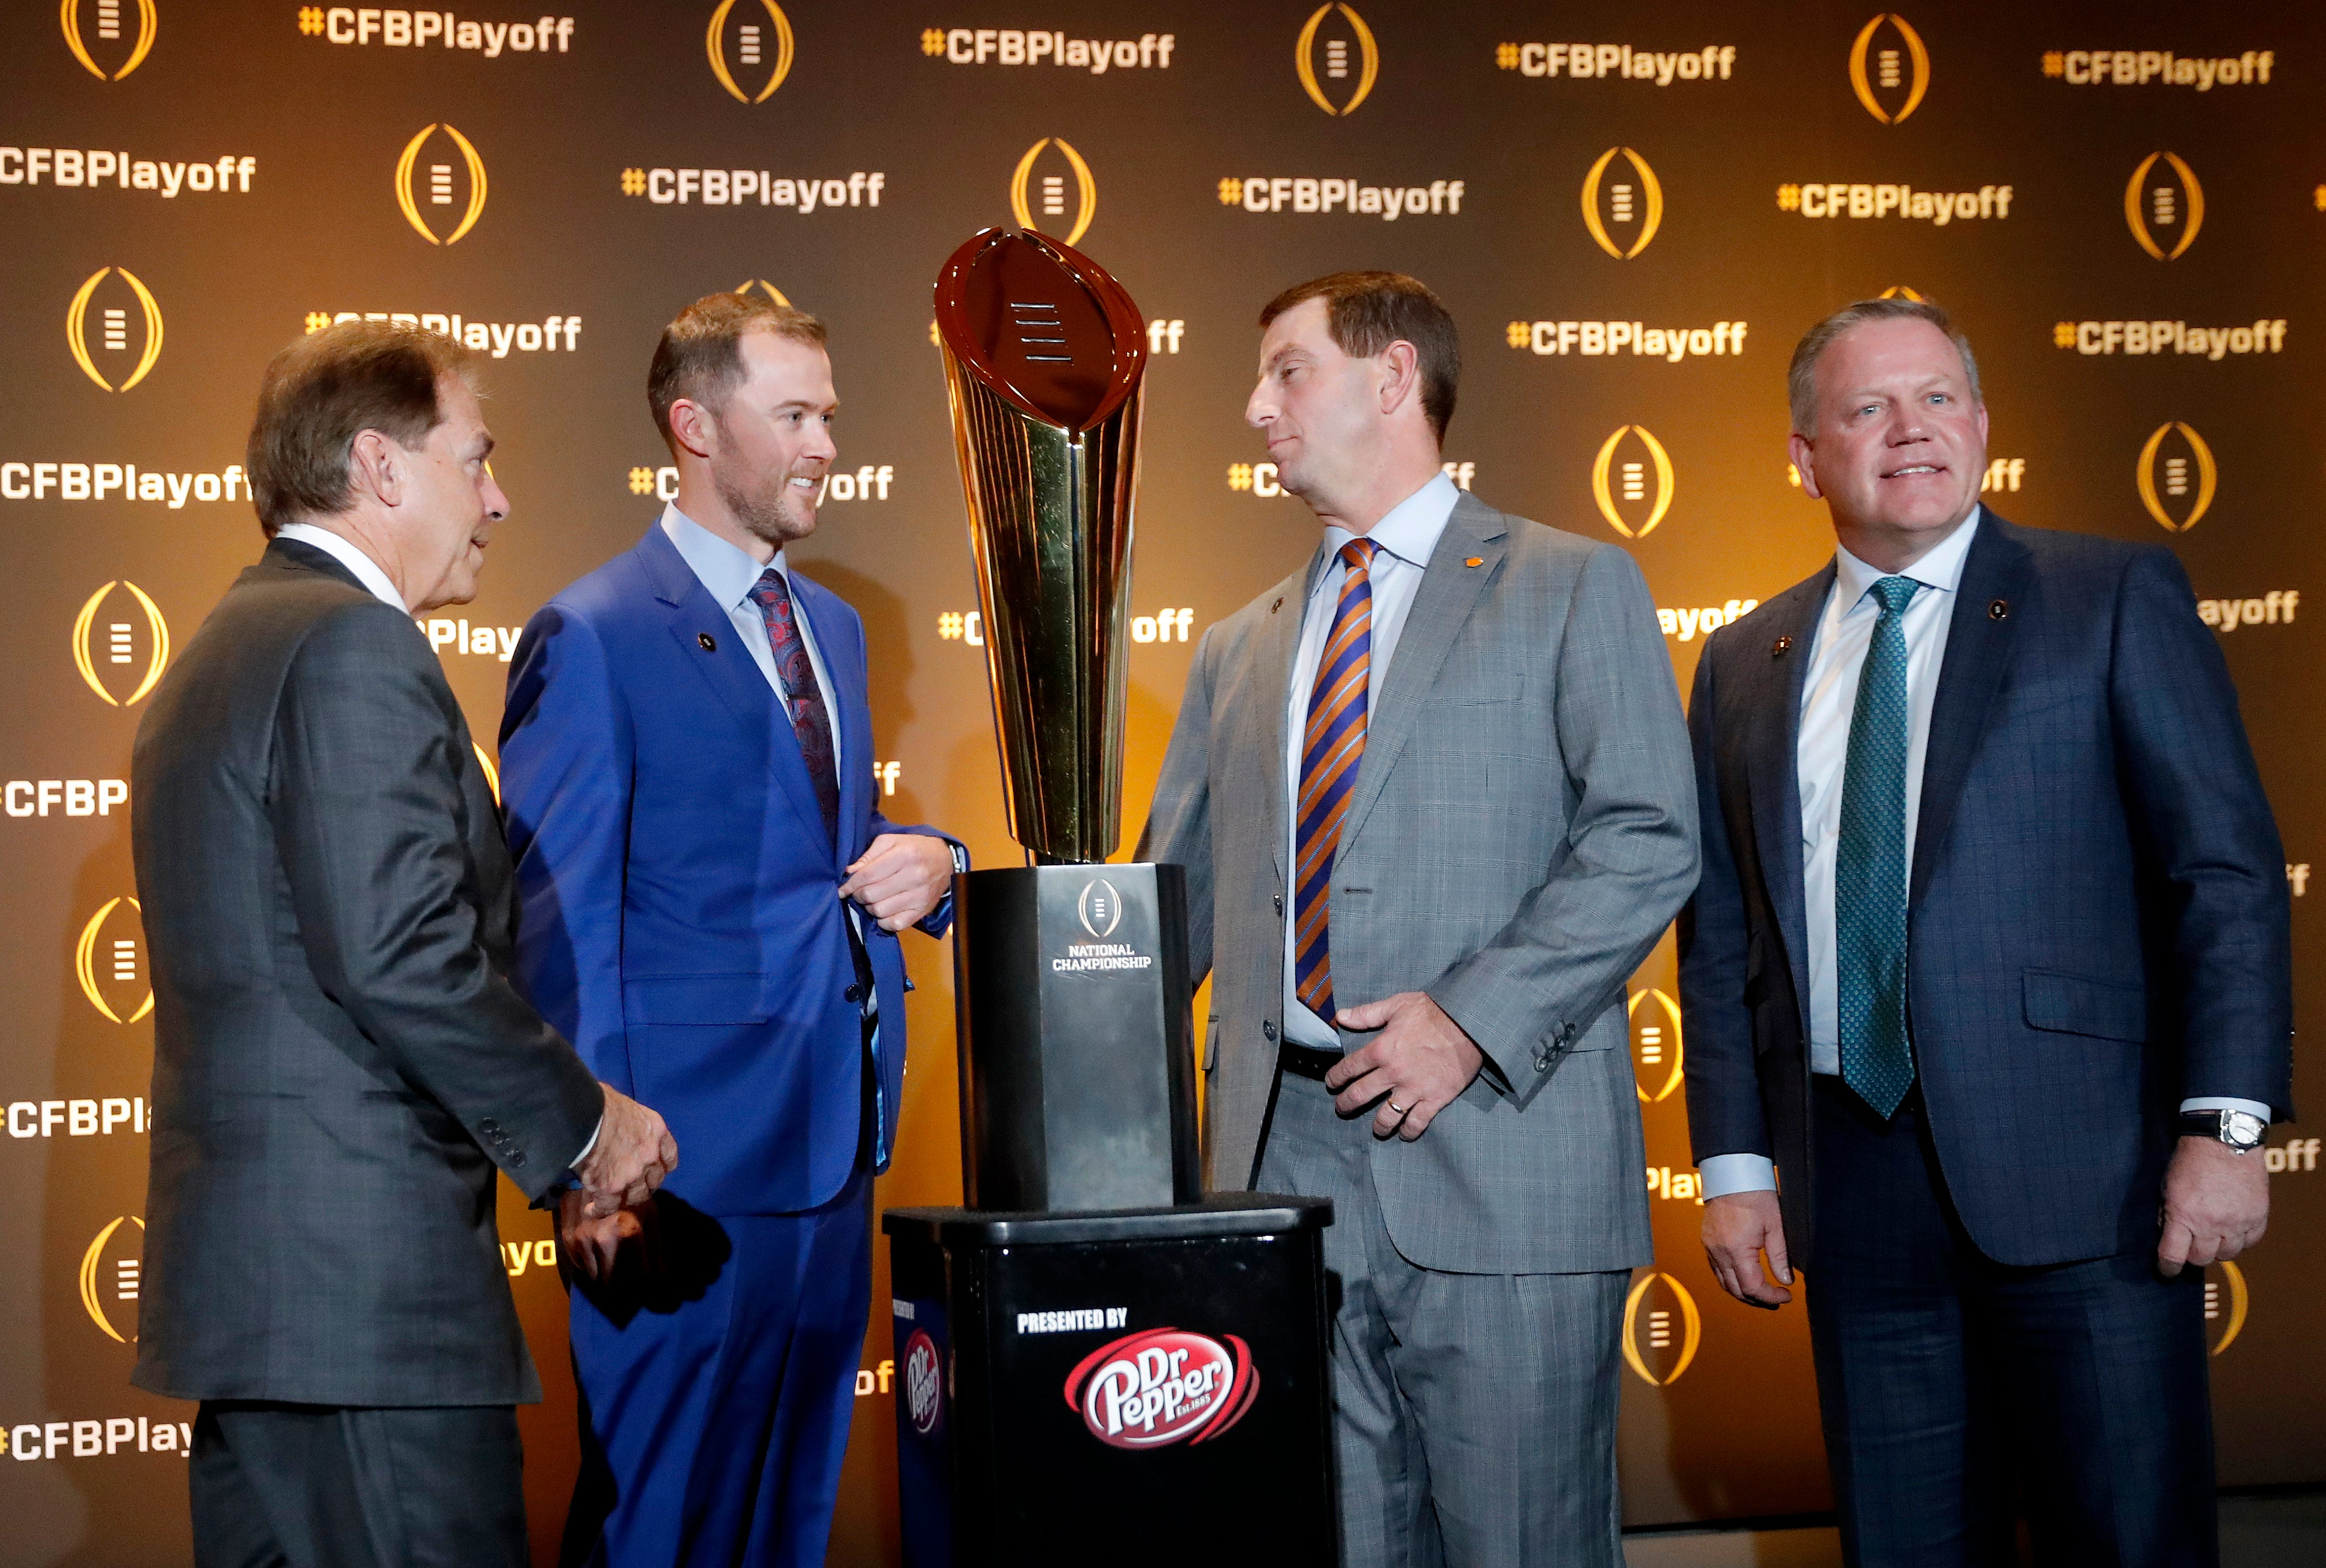 The coaches of the four teams in the College Football Playoff, Alabama's Nick Saban, Oklahoma's Lincoln Riley, Clemson's Dabo Swinney and Notre Dame's Brian Kelly chat after a news conference in Atlanta.